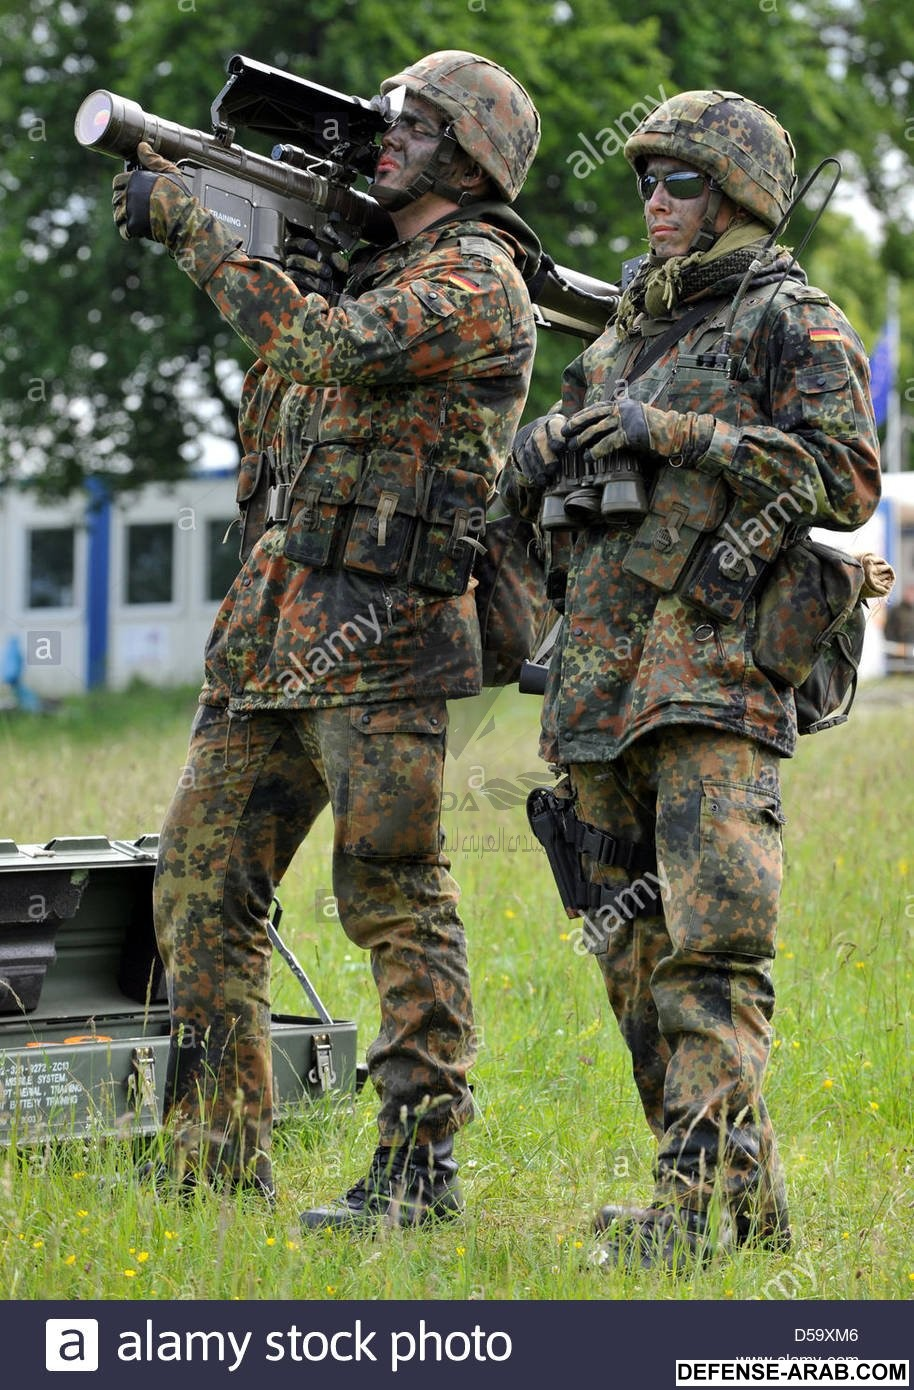 agerman-bundeswehr-soldier-aims-with-a-stinger-surface-to-air-missile-D59XM6.jpg